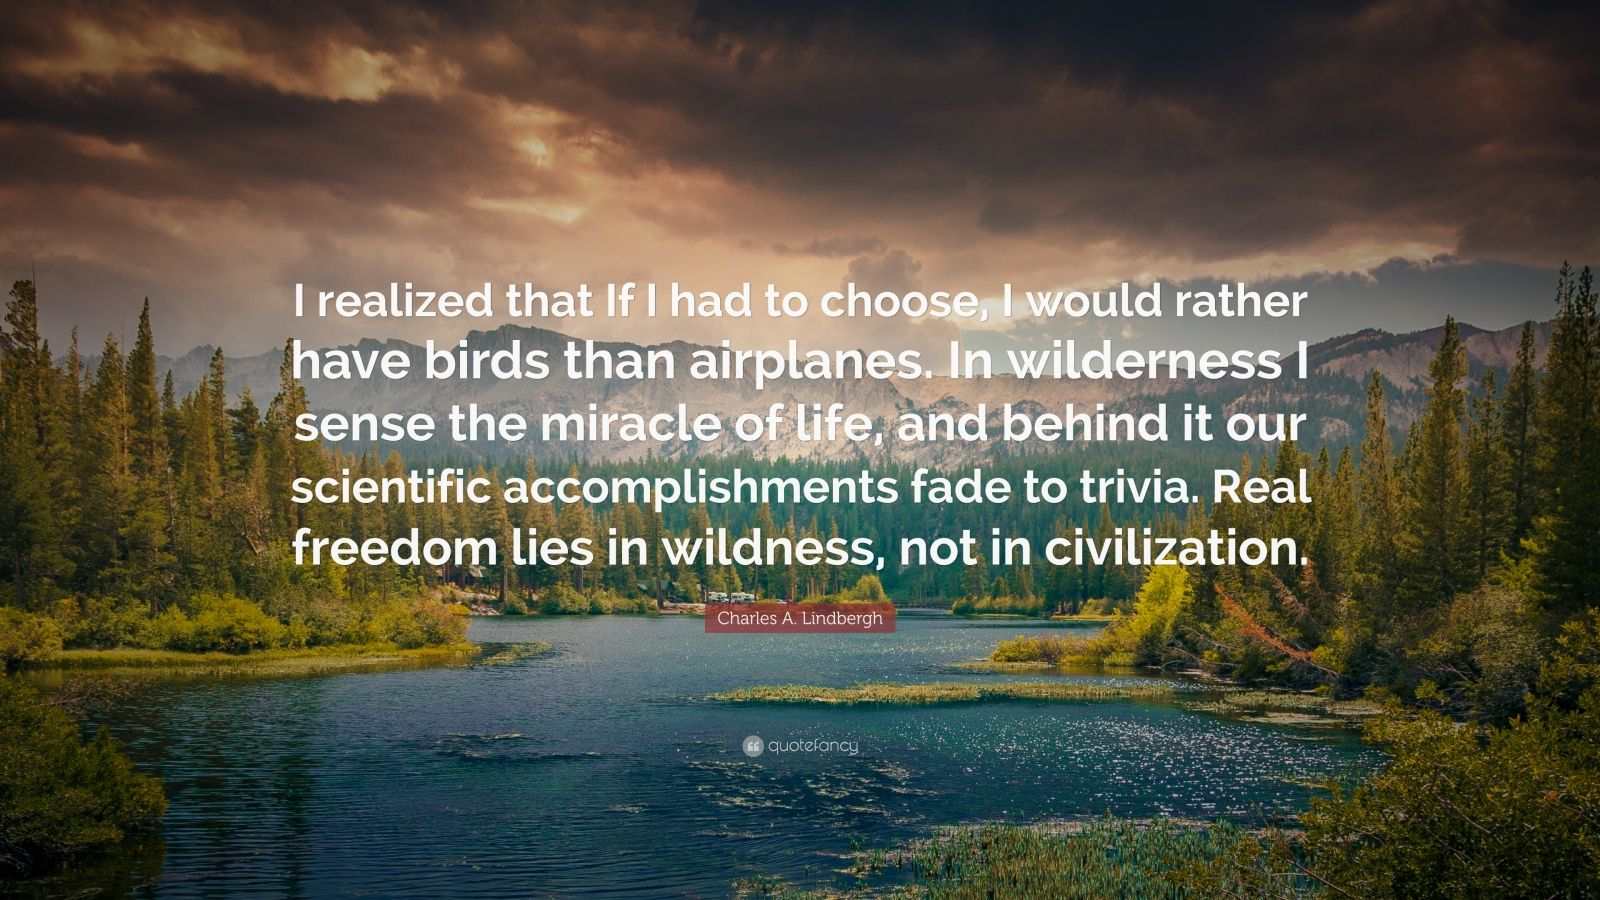 "Charles A. Lindbergh Quote: ""I realized that If I had to choose, I would rather have birds than airplanes.  In wilderness I sense the miracle of life, and behind it our scientific accomplishments fade to trivia. Real freedom lies in wildness, not in civilization."""